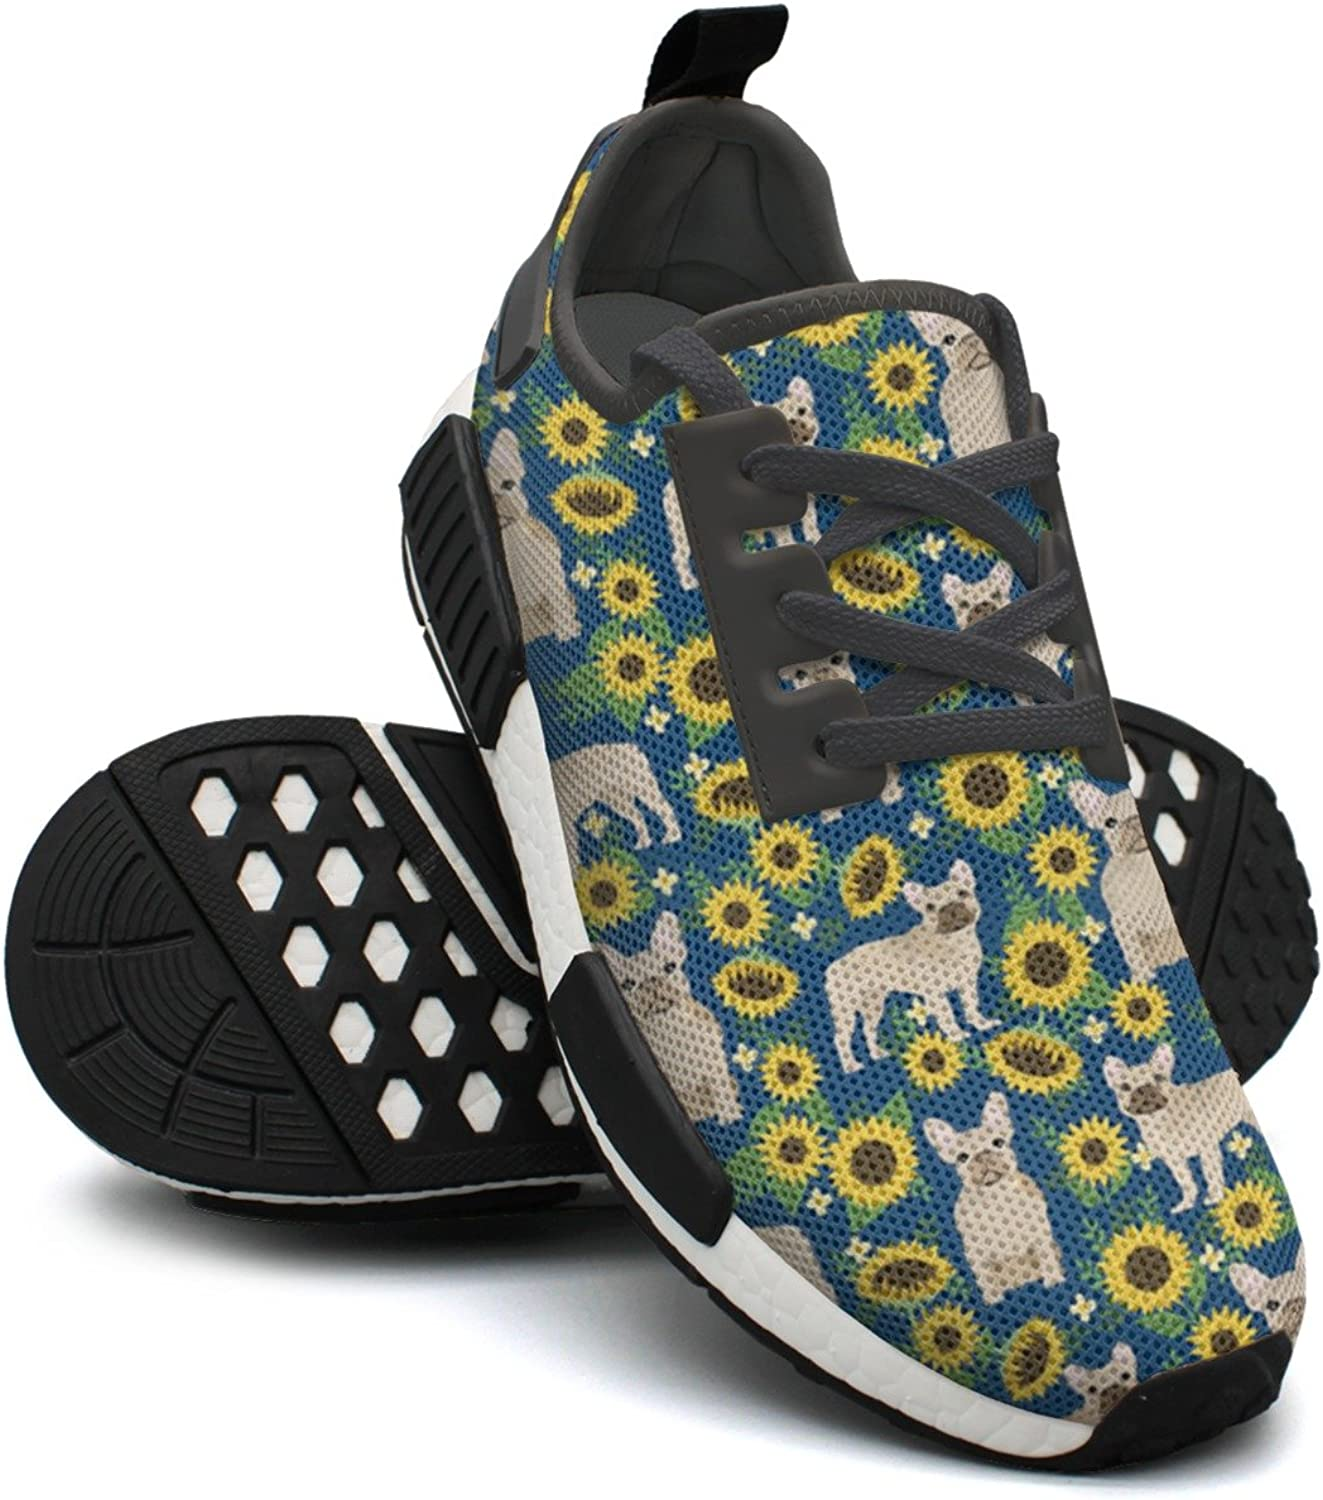 French Bulldog Sunflowers Pattern Women's Designer Lightweight Sneakers shoes Gym Outdoor Walking shoes